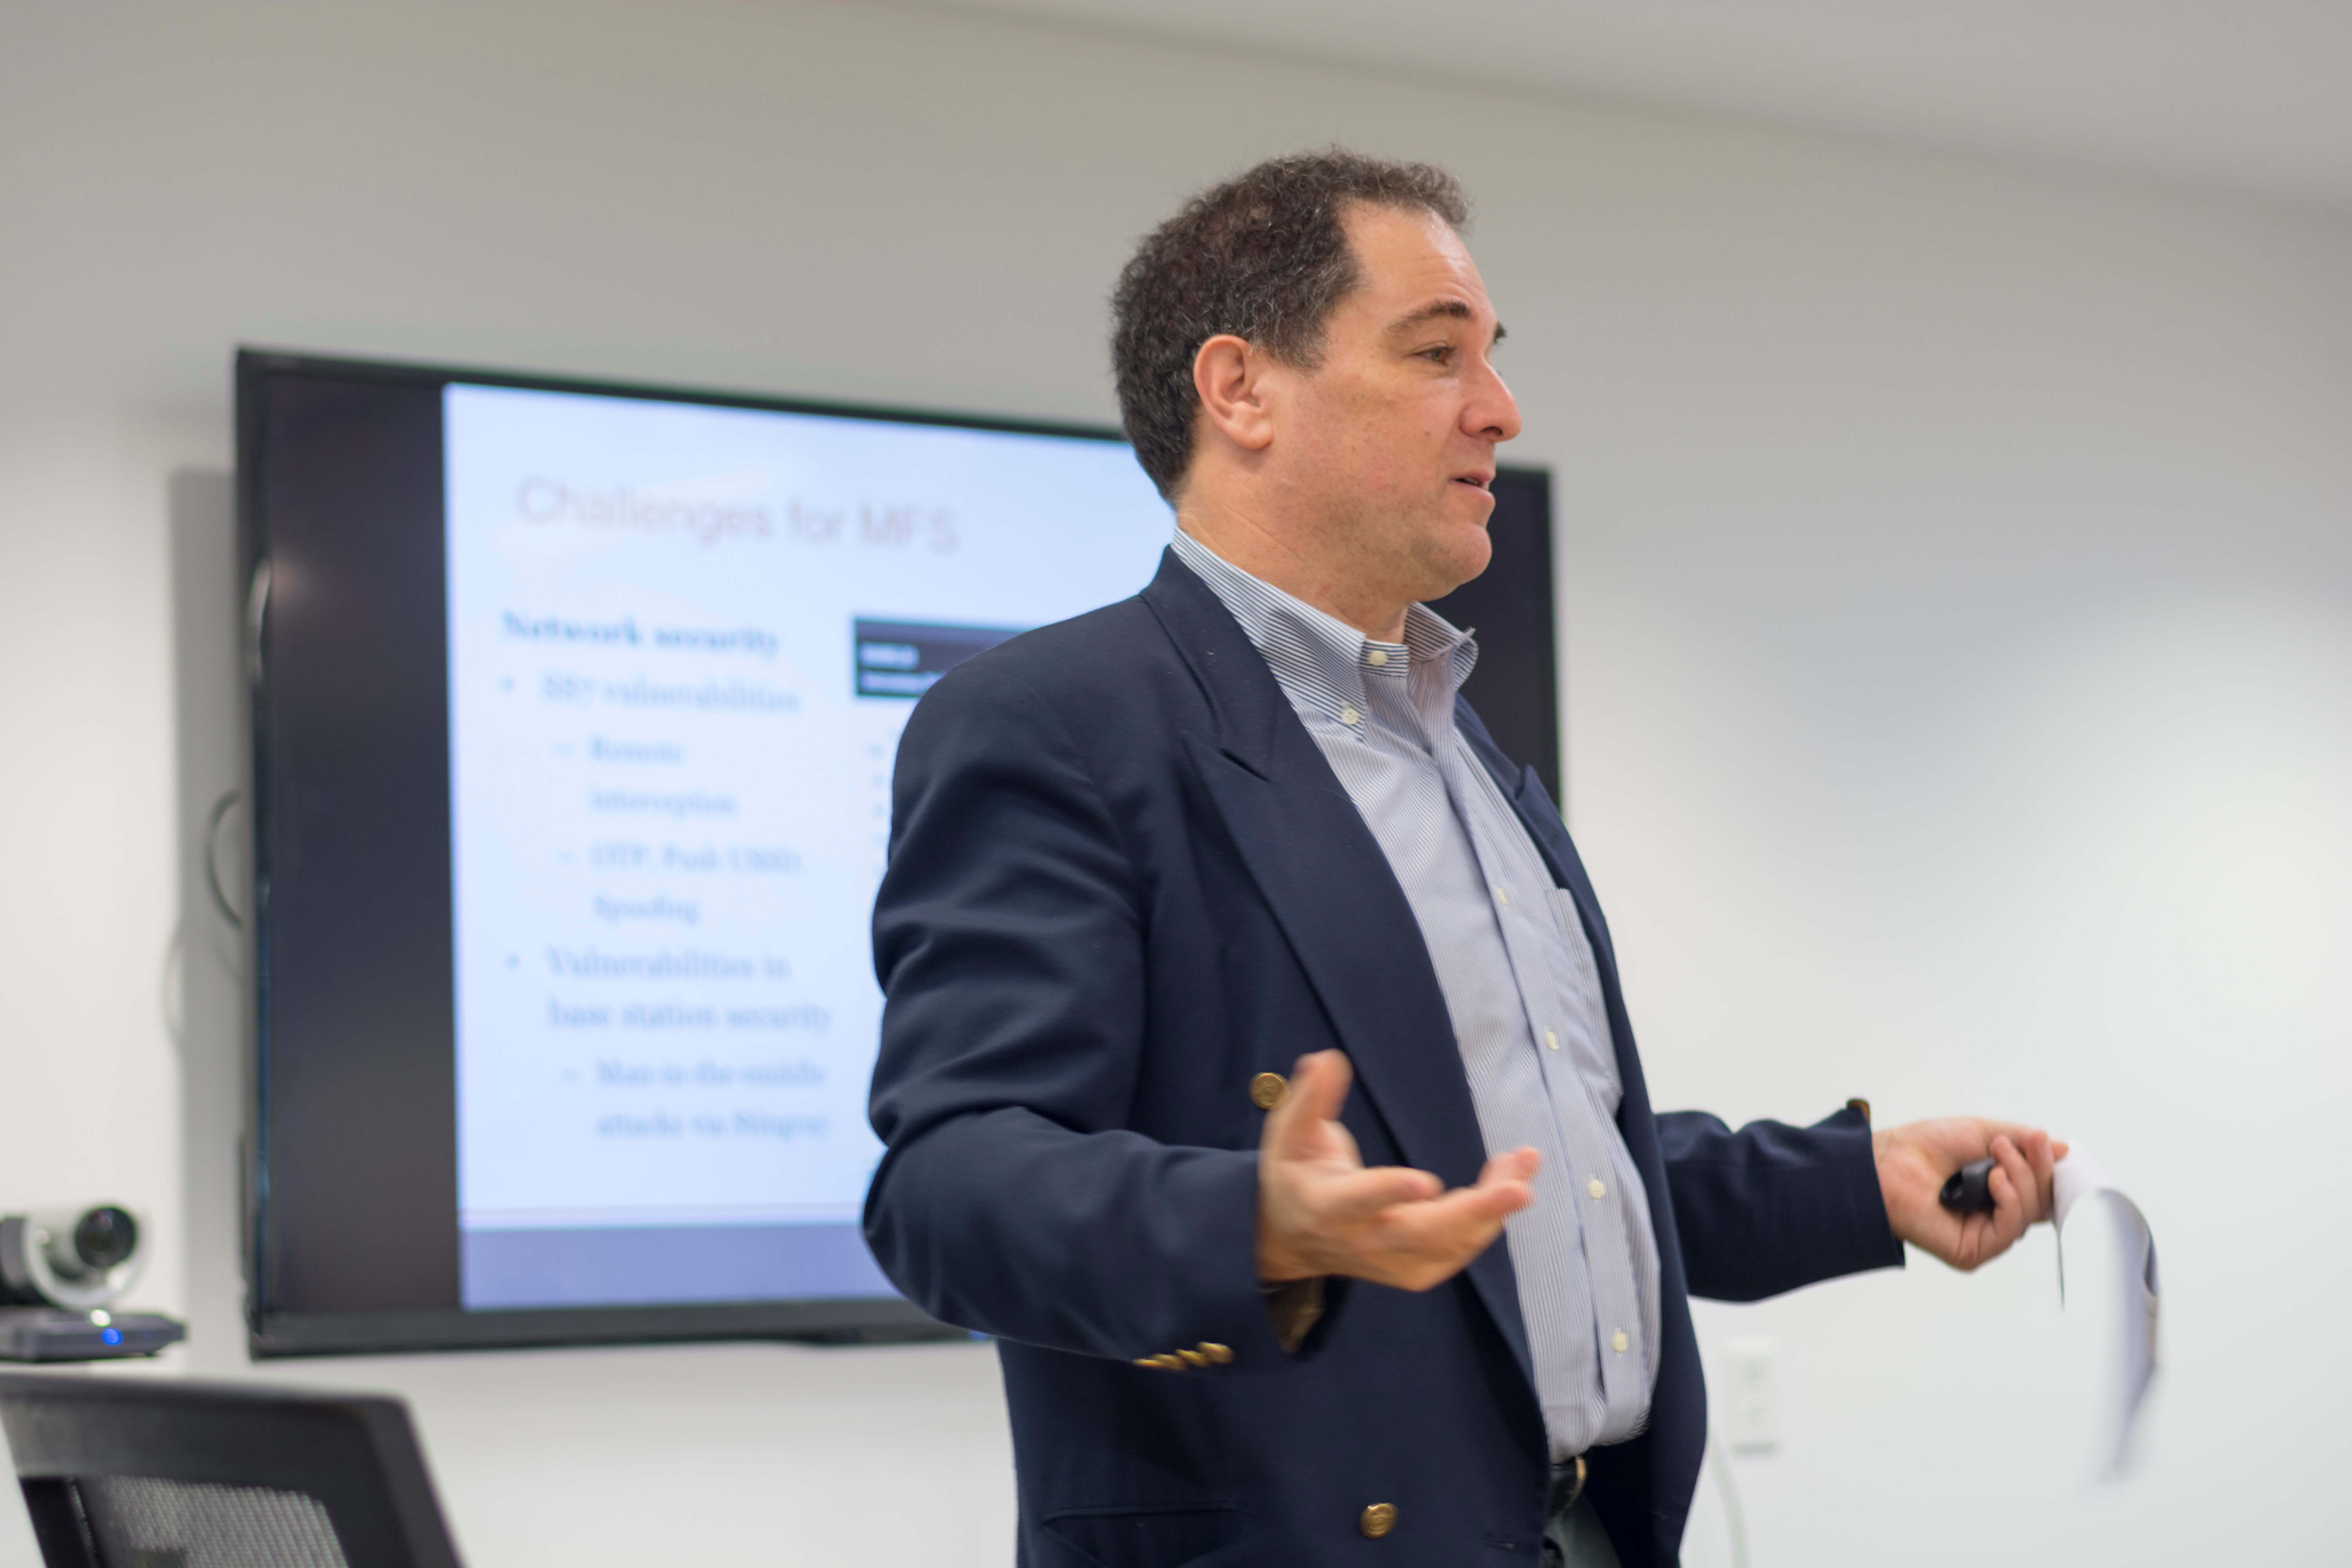 CFI Fellow Leon Perlman presents findings from his report, Technology Inequality: Opportunities and Challenges for Mobile Financial Services, in April 2017.